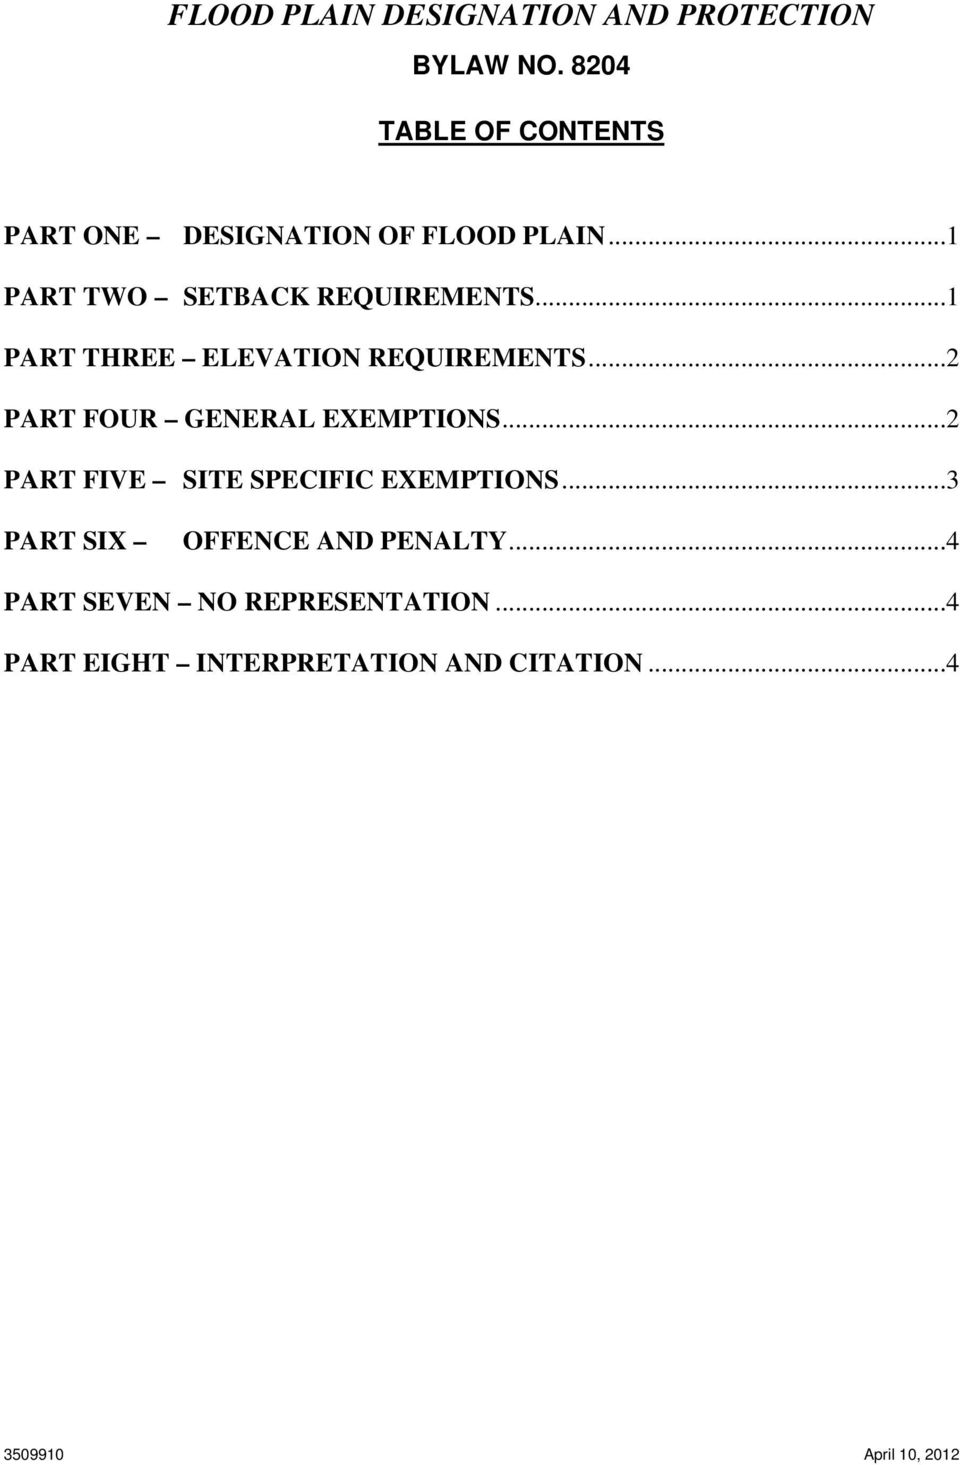 ..1 PART THREE ELEVATION REQUIREMENTS...2 PART FOUR GENERAL EXEMPTIONS.